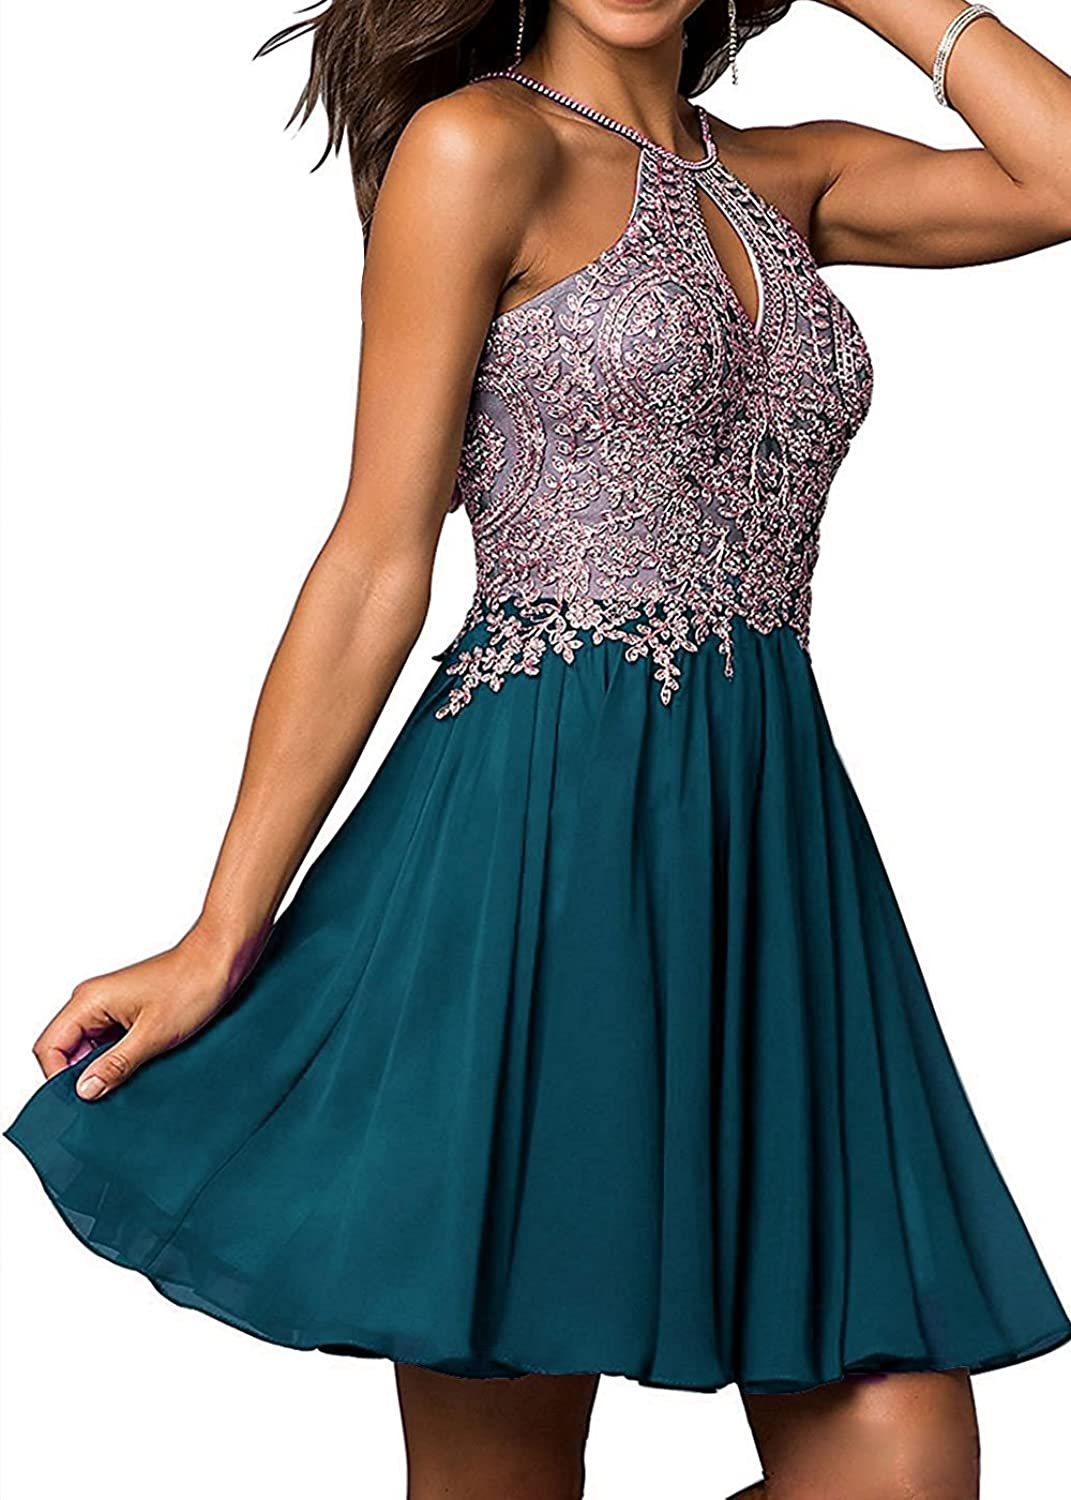 Dannifore Lace Applique Homecoming Dresses Long Prom Bridesmaid Party Gown